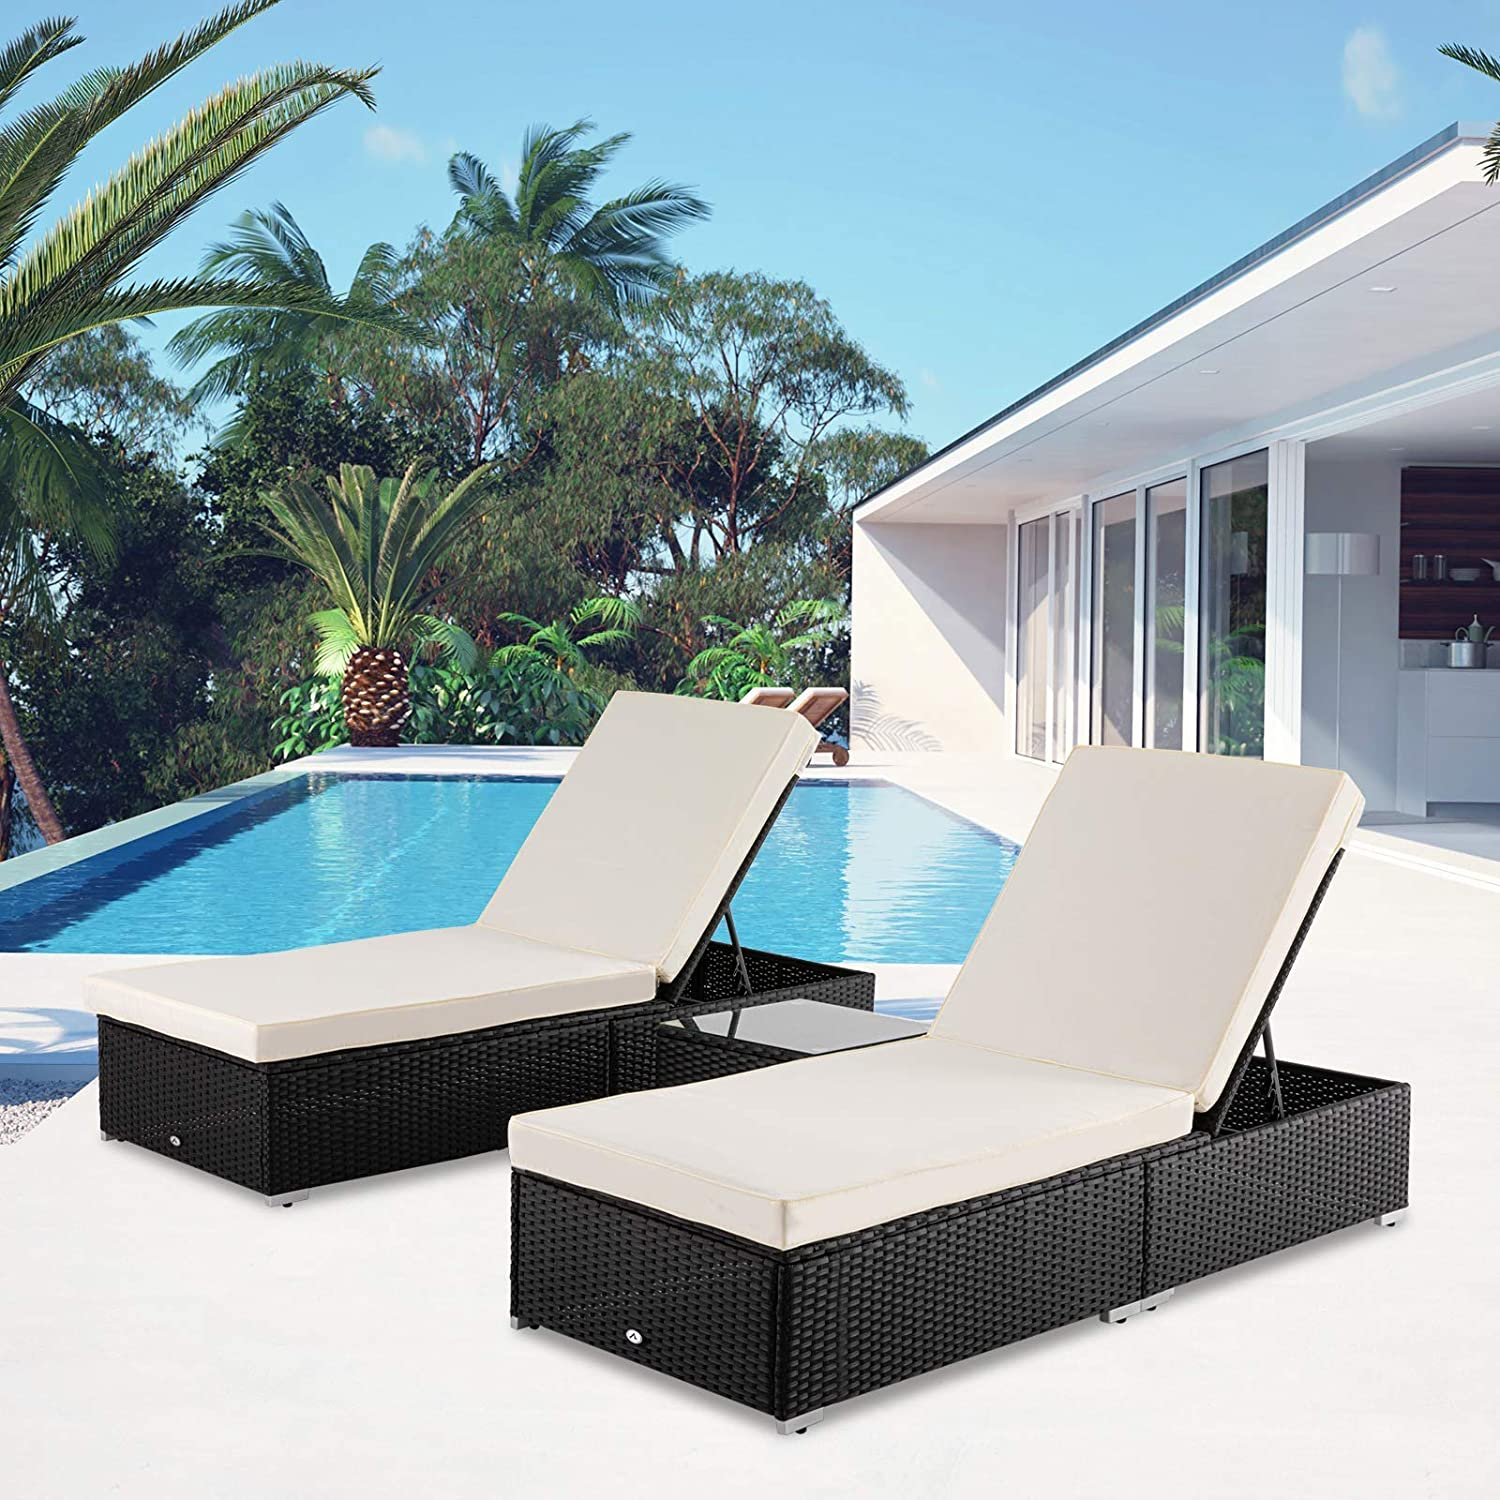 Apepro 3 Pieces Chaise Lounge Patio Furniture Set